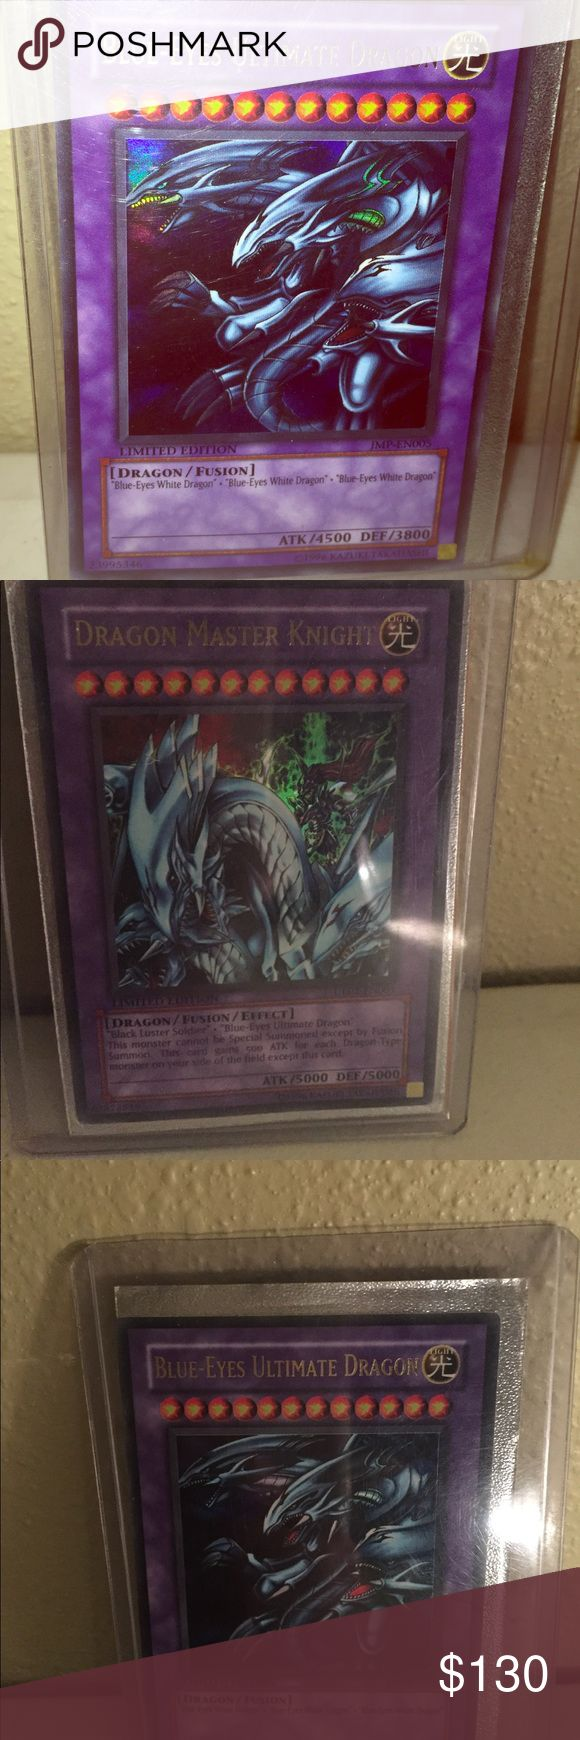 the 25 best rare yugioh cards ideas on pinterest yugioh dragon